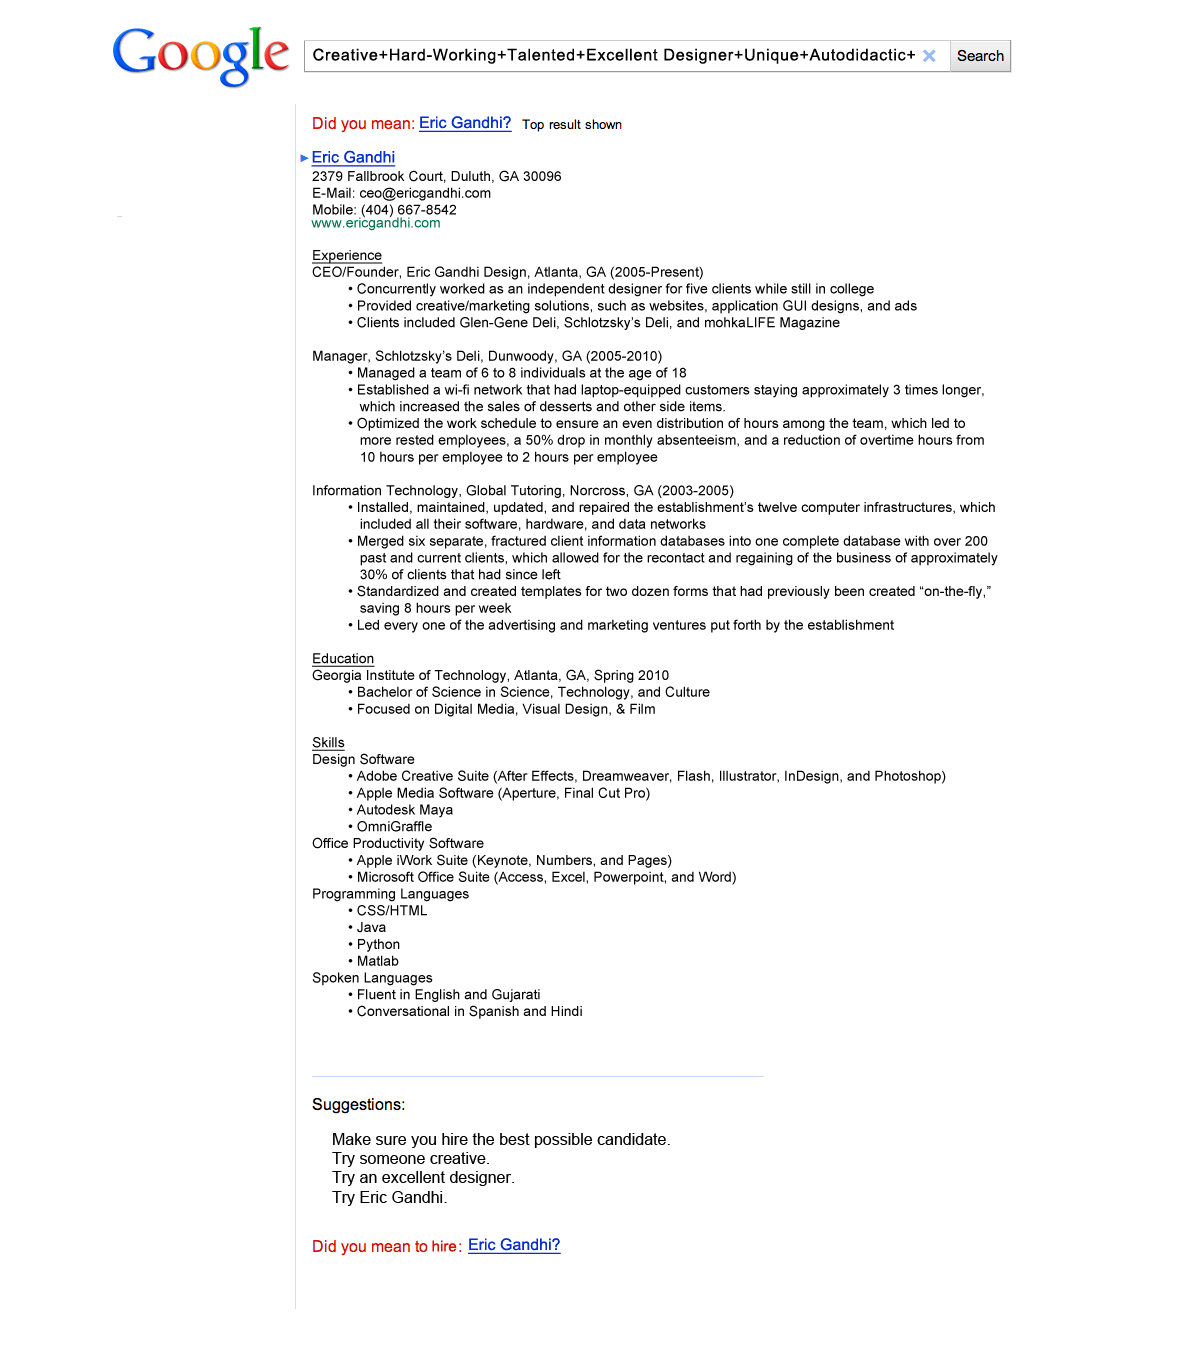 Resume Valley A Google Themed Resume Got Eric Gandhi An Interview With